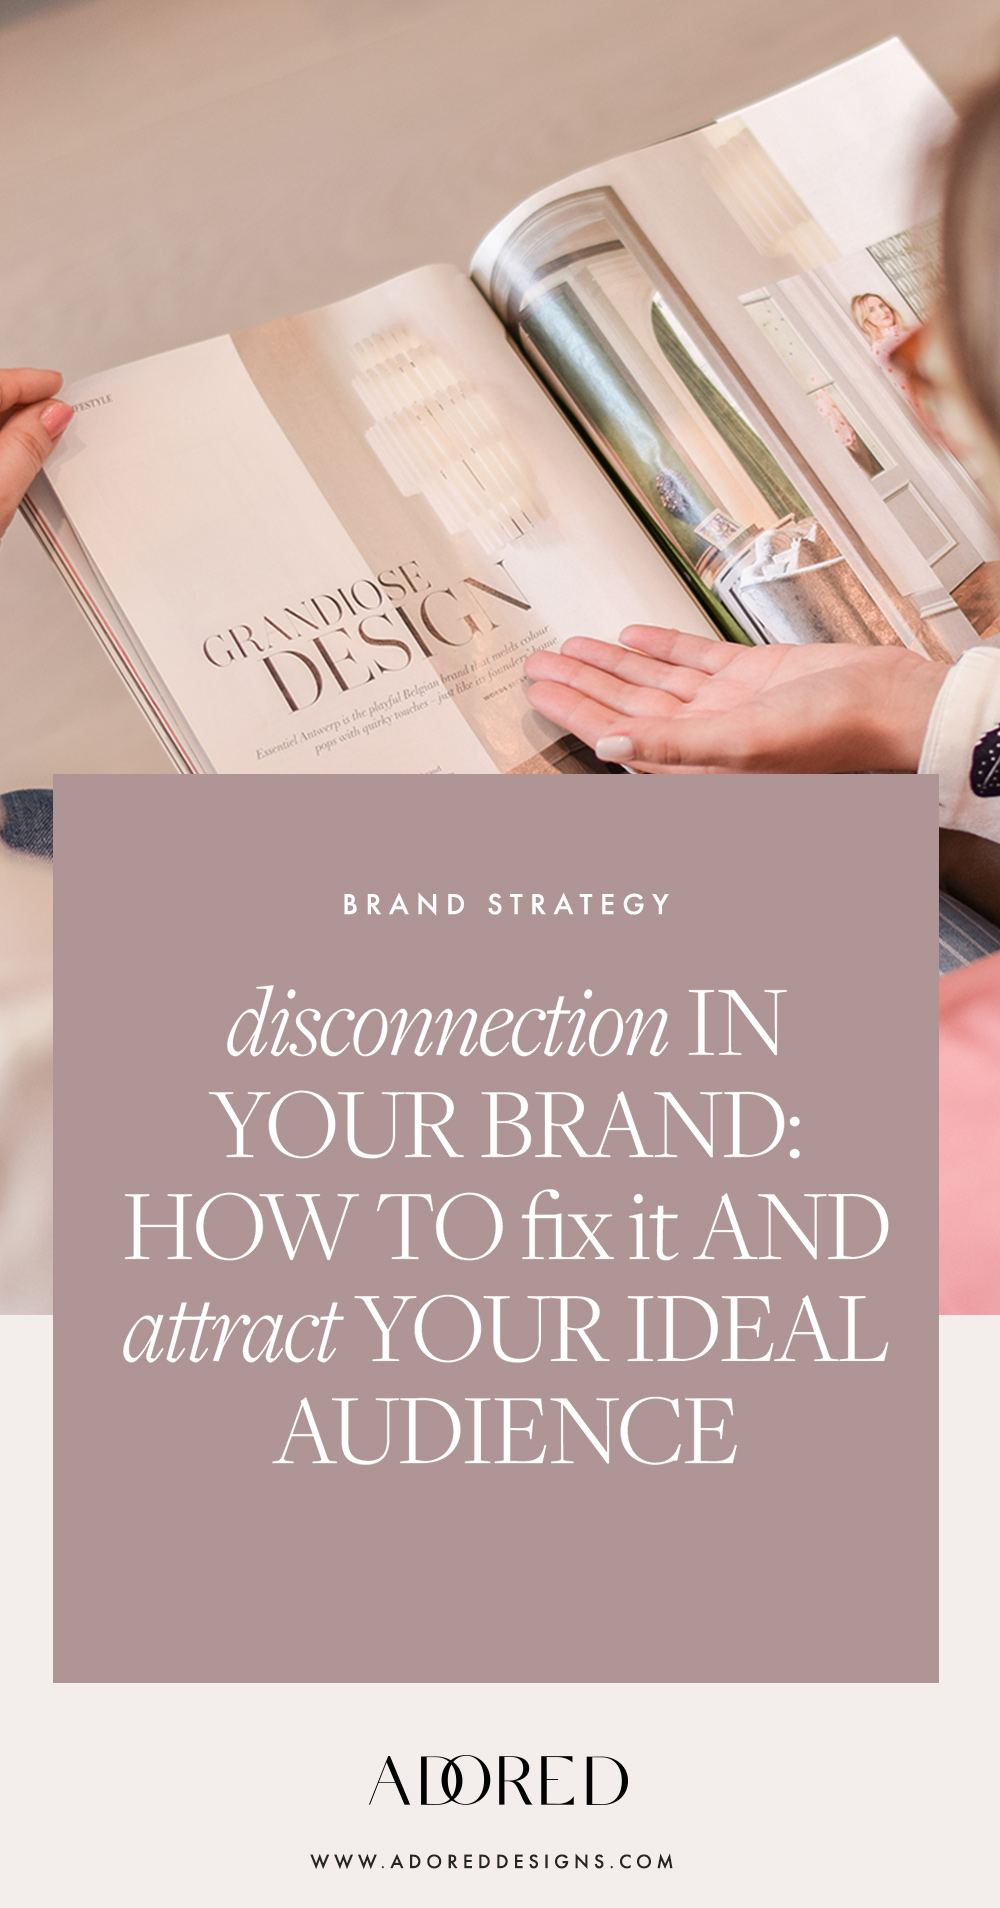 Disconnection in your brand: how to fix it